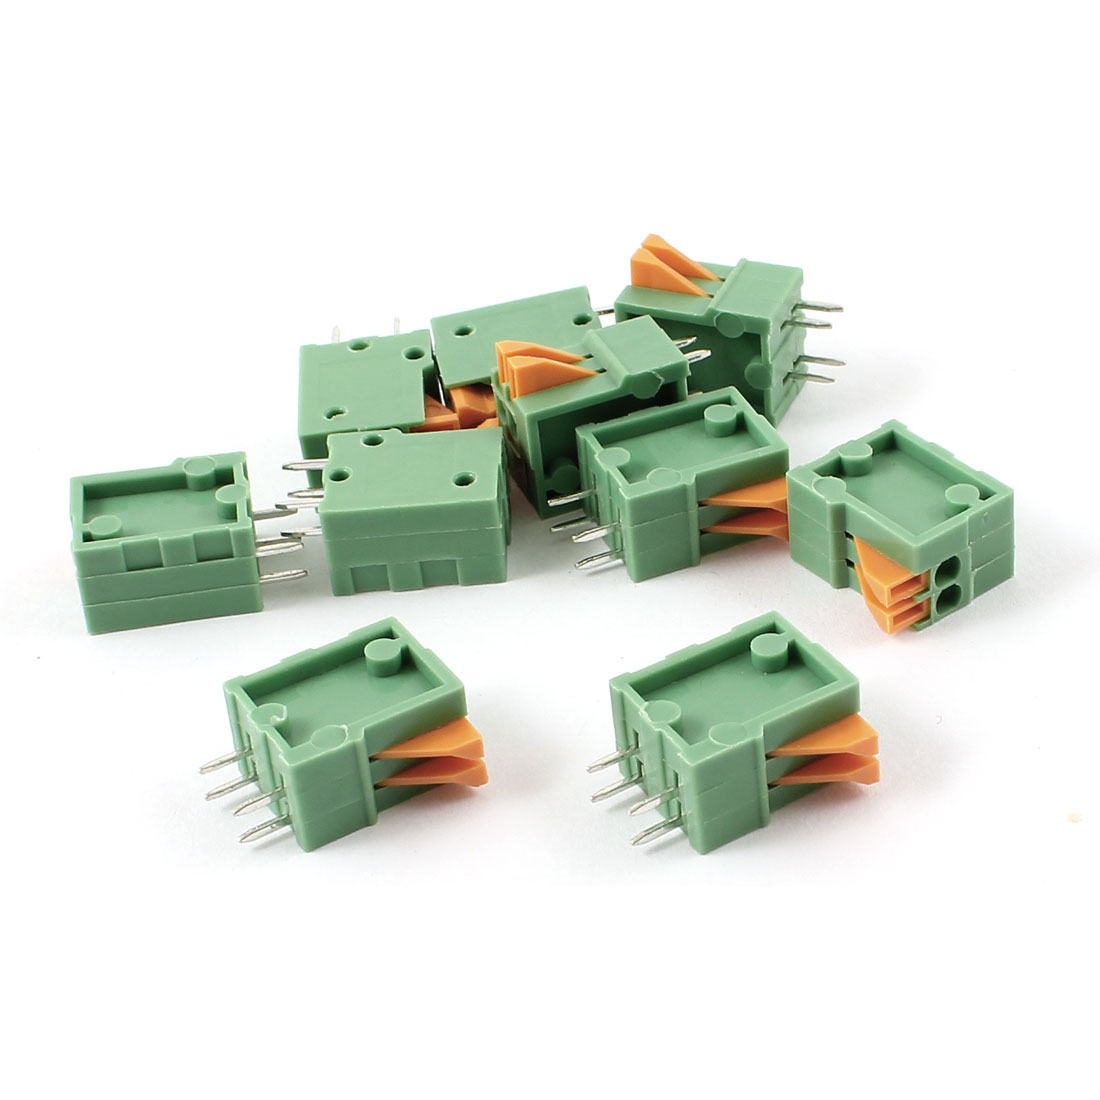 10pcs Straight 2 Positions 2.54mm PCB Board Screwless Spring Terminal Blocks